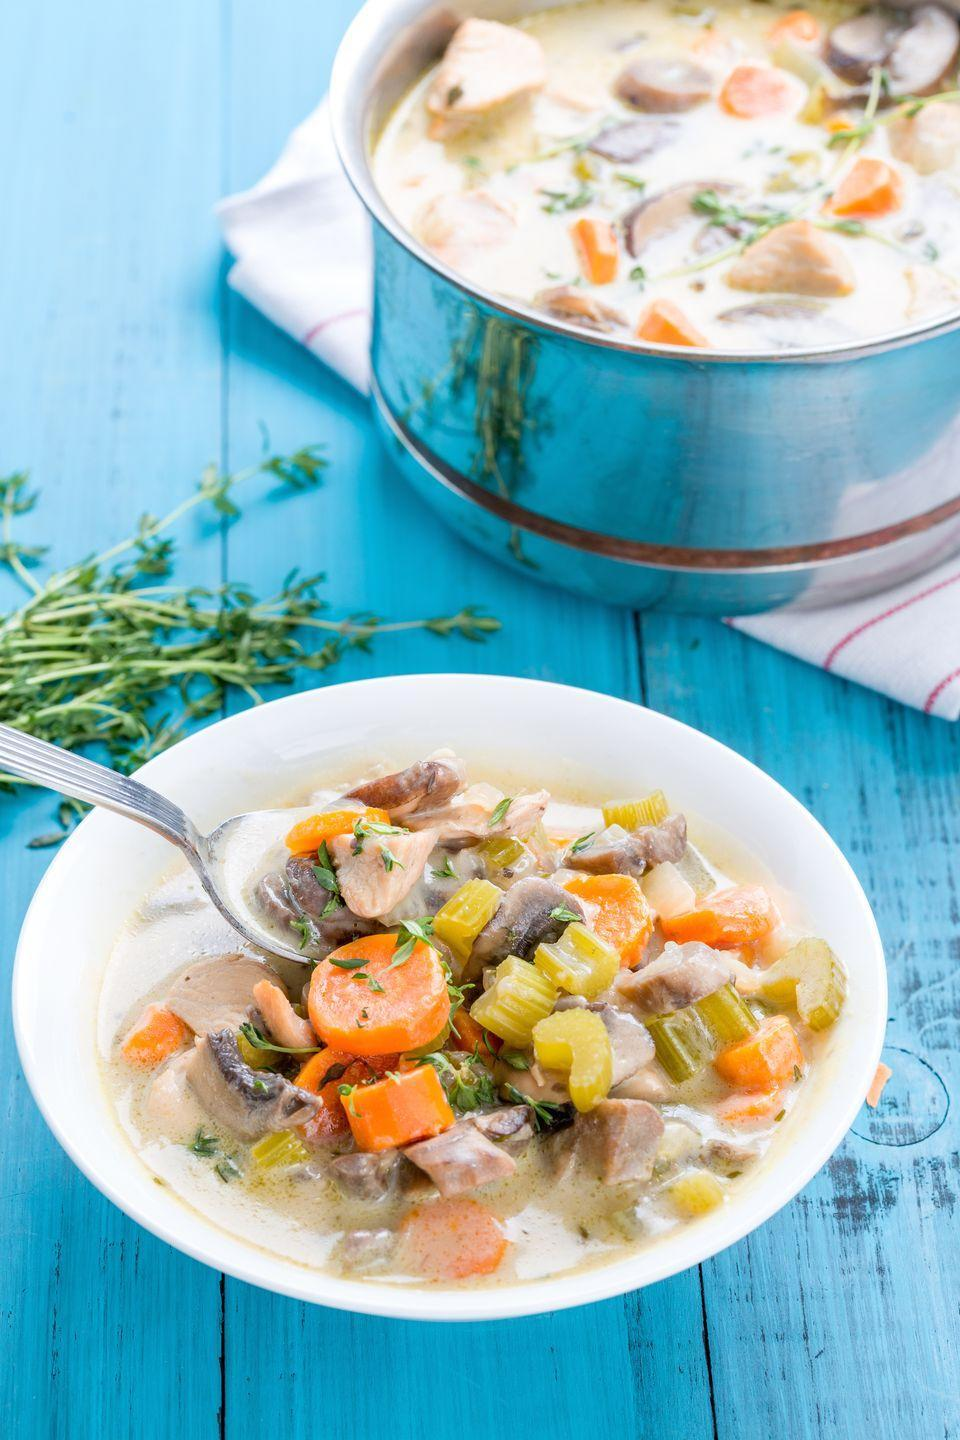 "<p>This updated classic—loaded with celery, carrot, and fresh thyme—is the answer to all your problems on a cold night.</p><p>Get the recipe from <a href=""https://www.delish.com/cooking/recipe-ideas/recipes/a44387/creamy-chicken-and-mushroom-soup-recipe/"" rel=""nofollow noopener"" target=""_blank"" data-ylk=""slk:Delish"" class=""link rapid-noclick-resp"">Delish</a>.</p>"